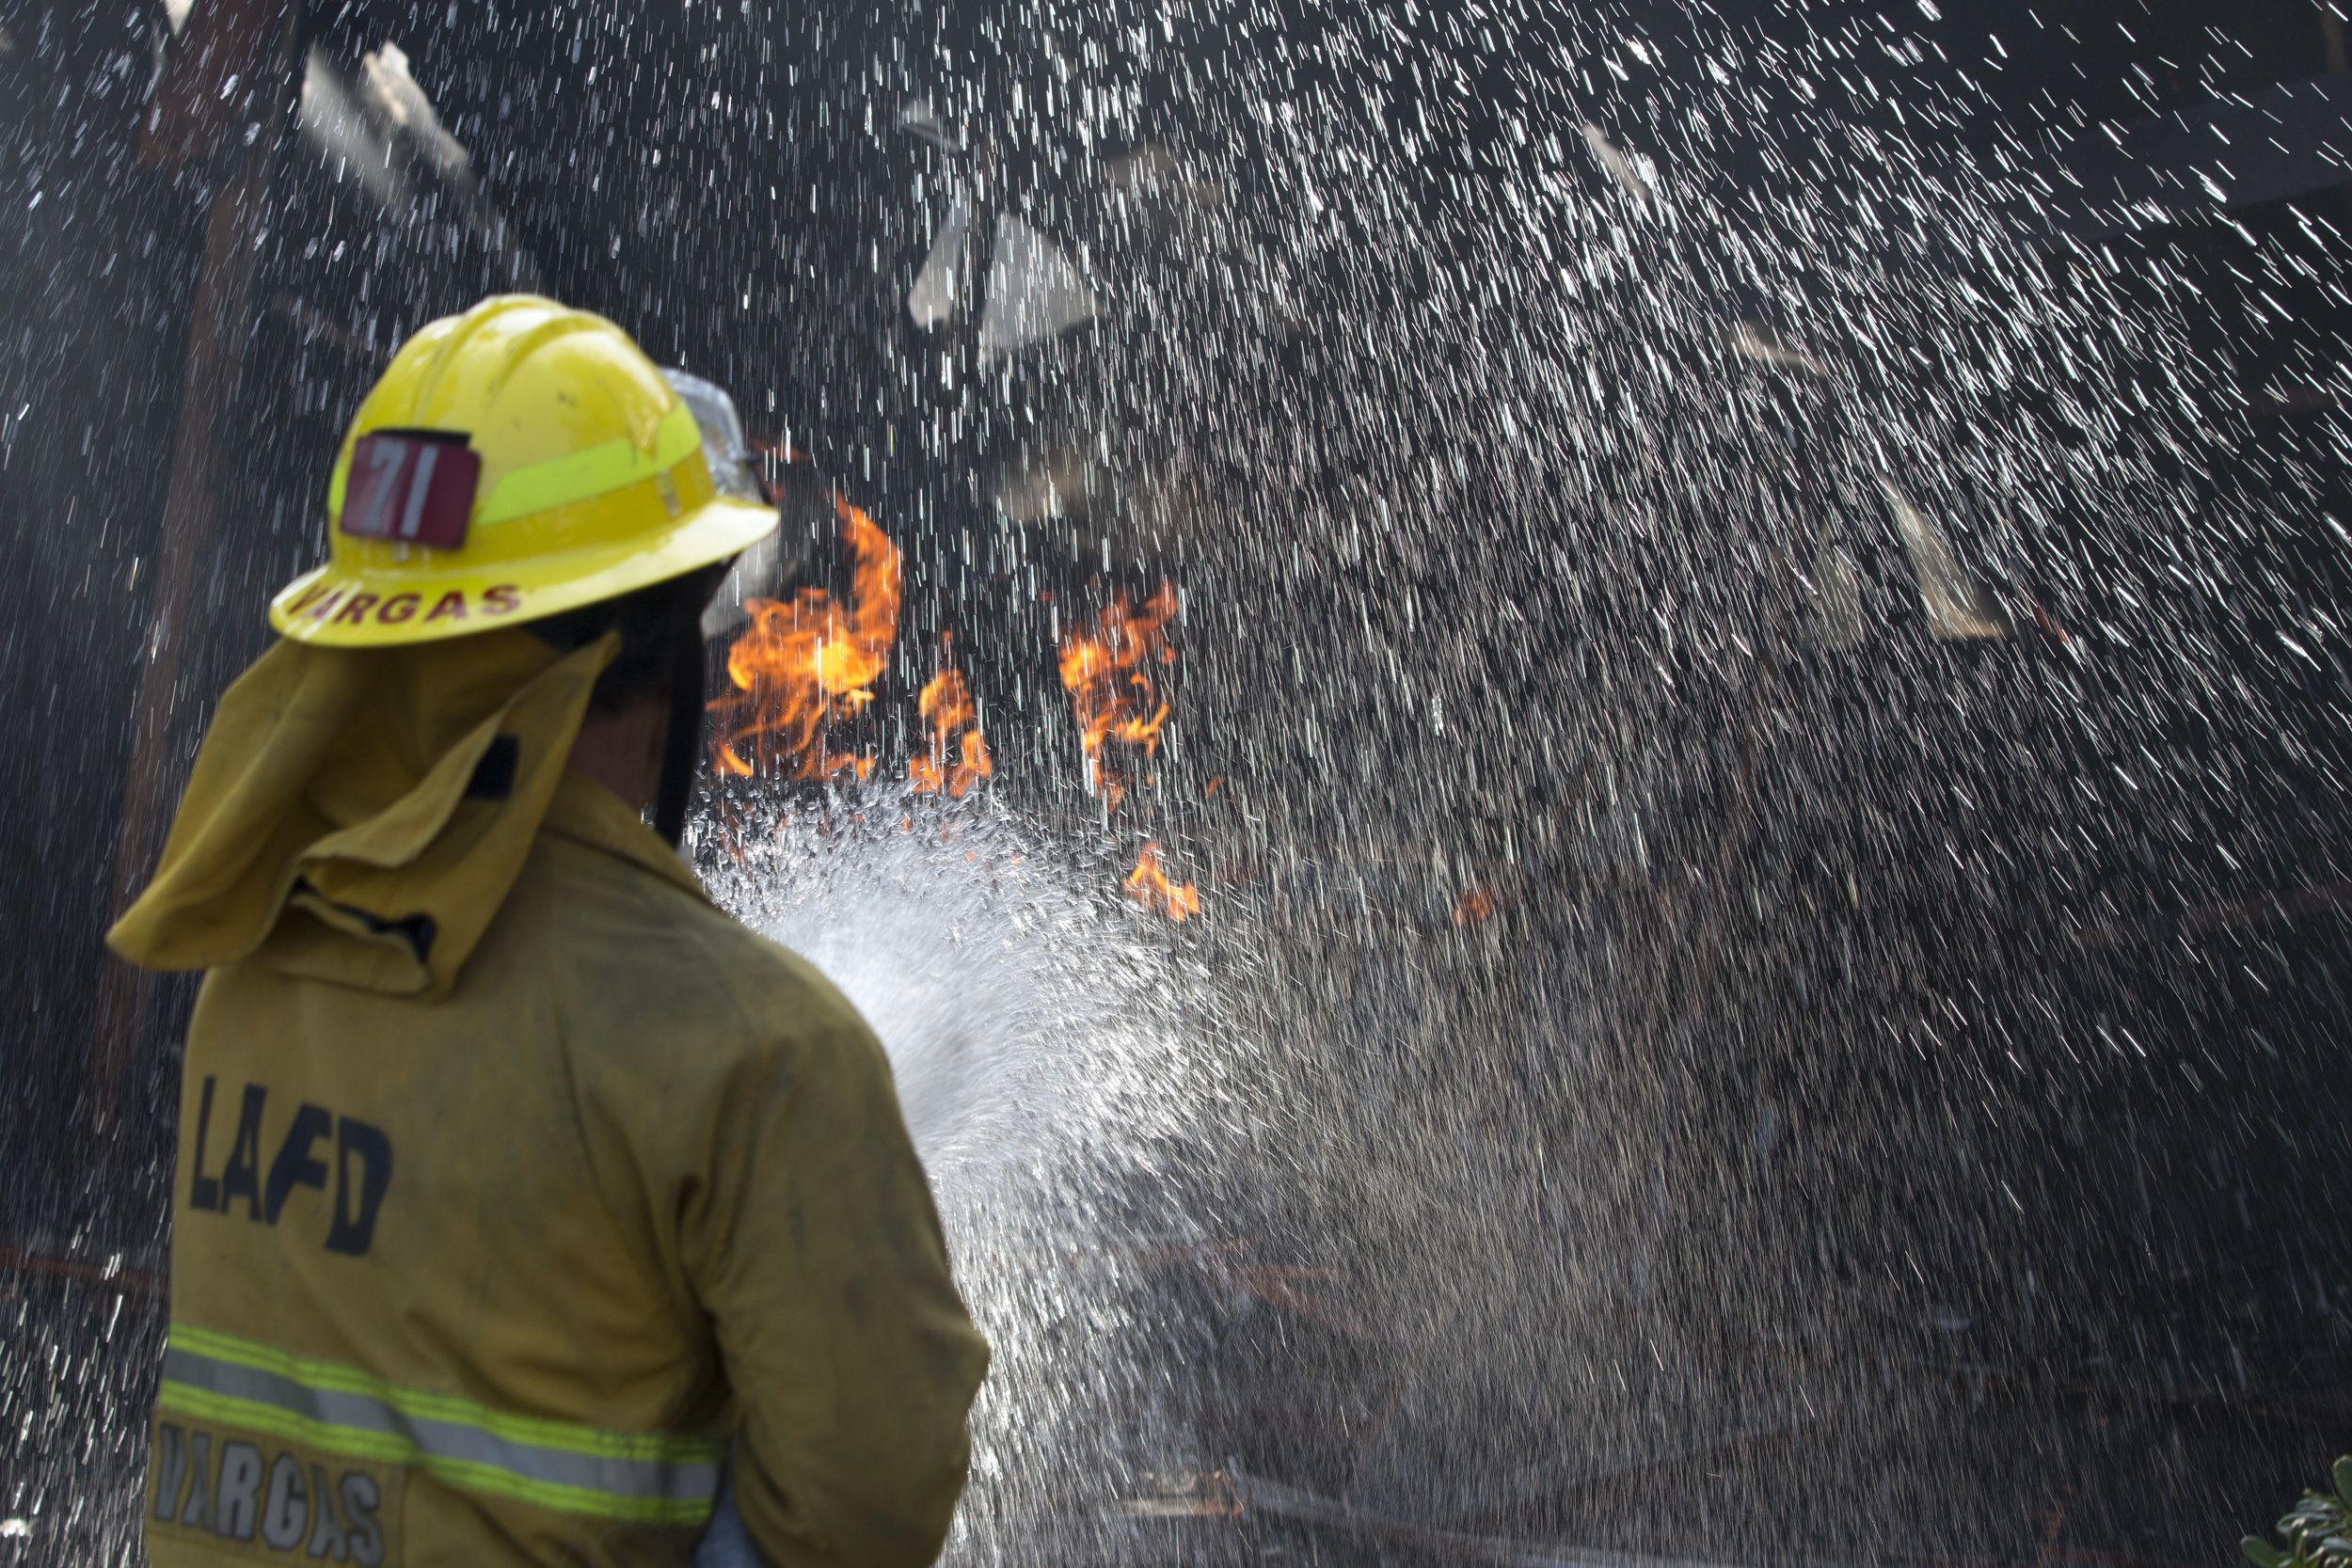 Los Angeles City firefighter Luis Vargas, from Engine 71, sprays down a car on fire inside a garage on Casiano Road during the Skirball fire on Wednesday, Dec.6, 2017 in the Bel-Air area of Los Angeles, Calif. (Jose Lopez)